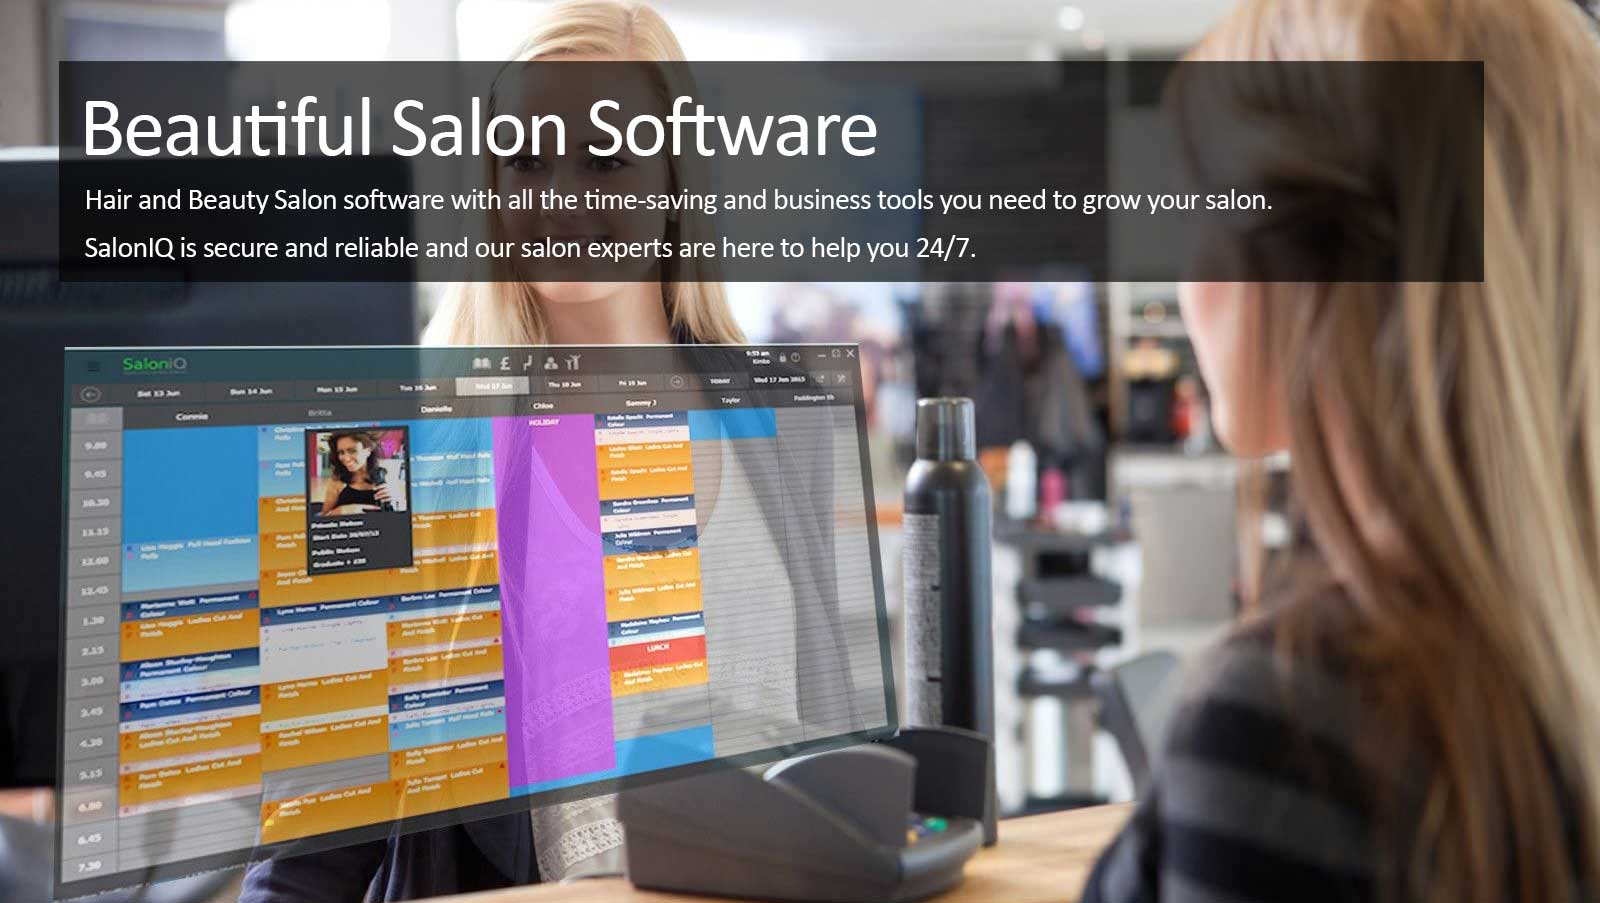 saloniq-salon-sofware uk